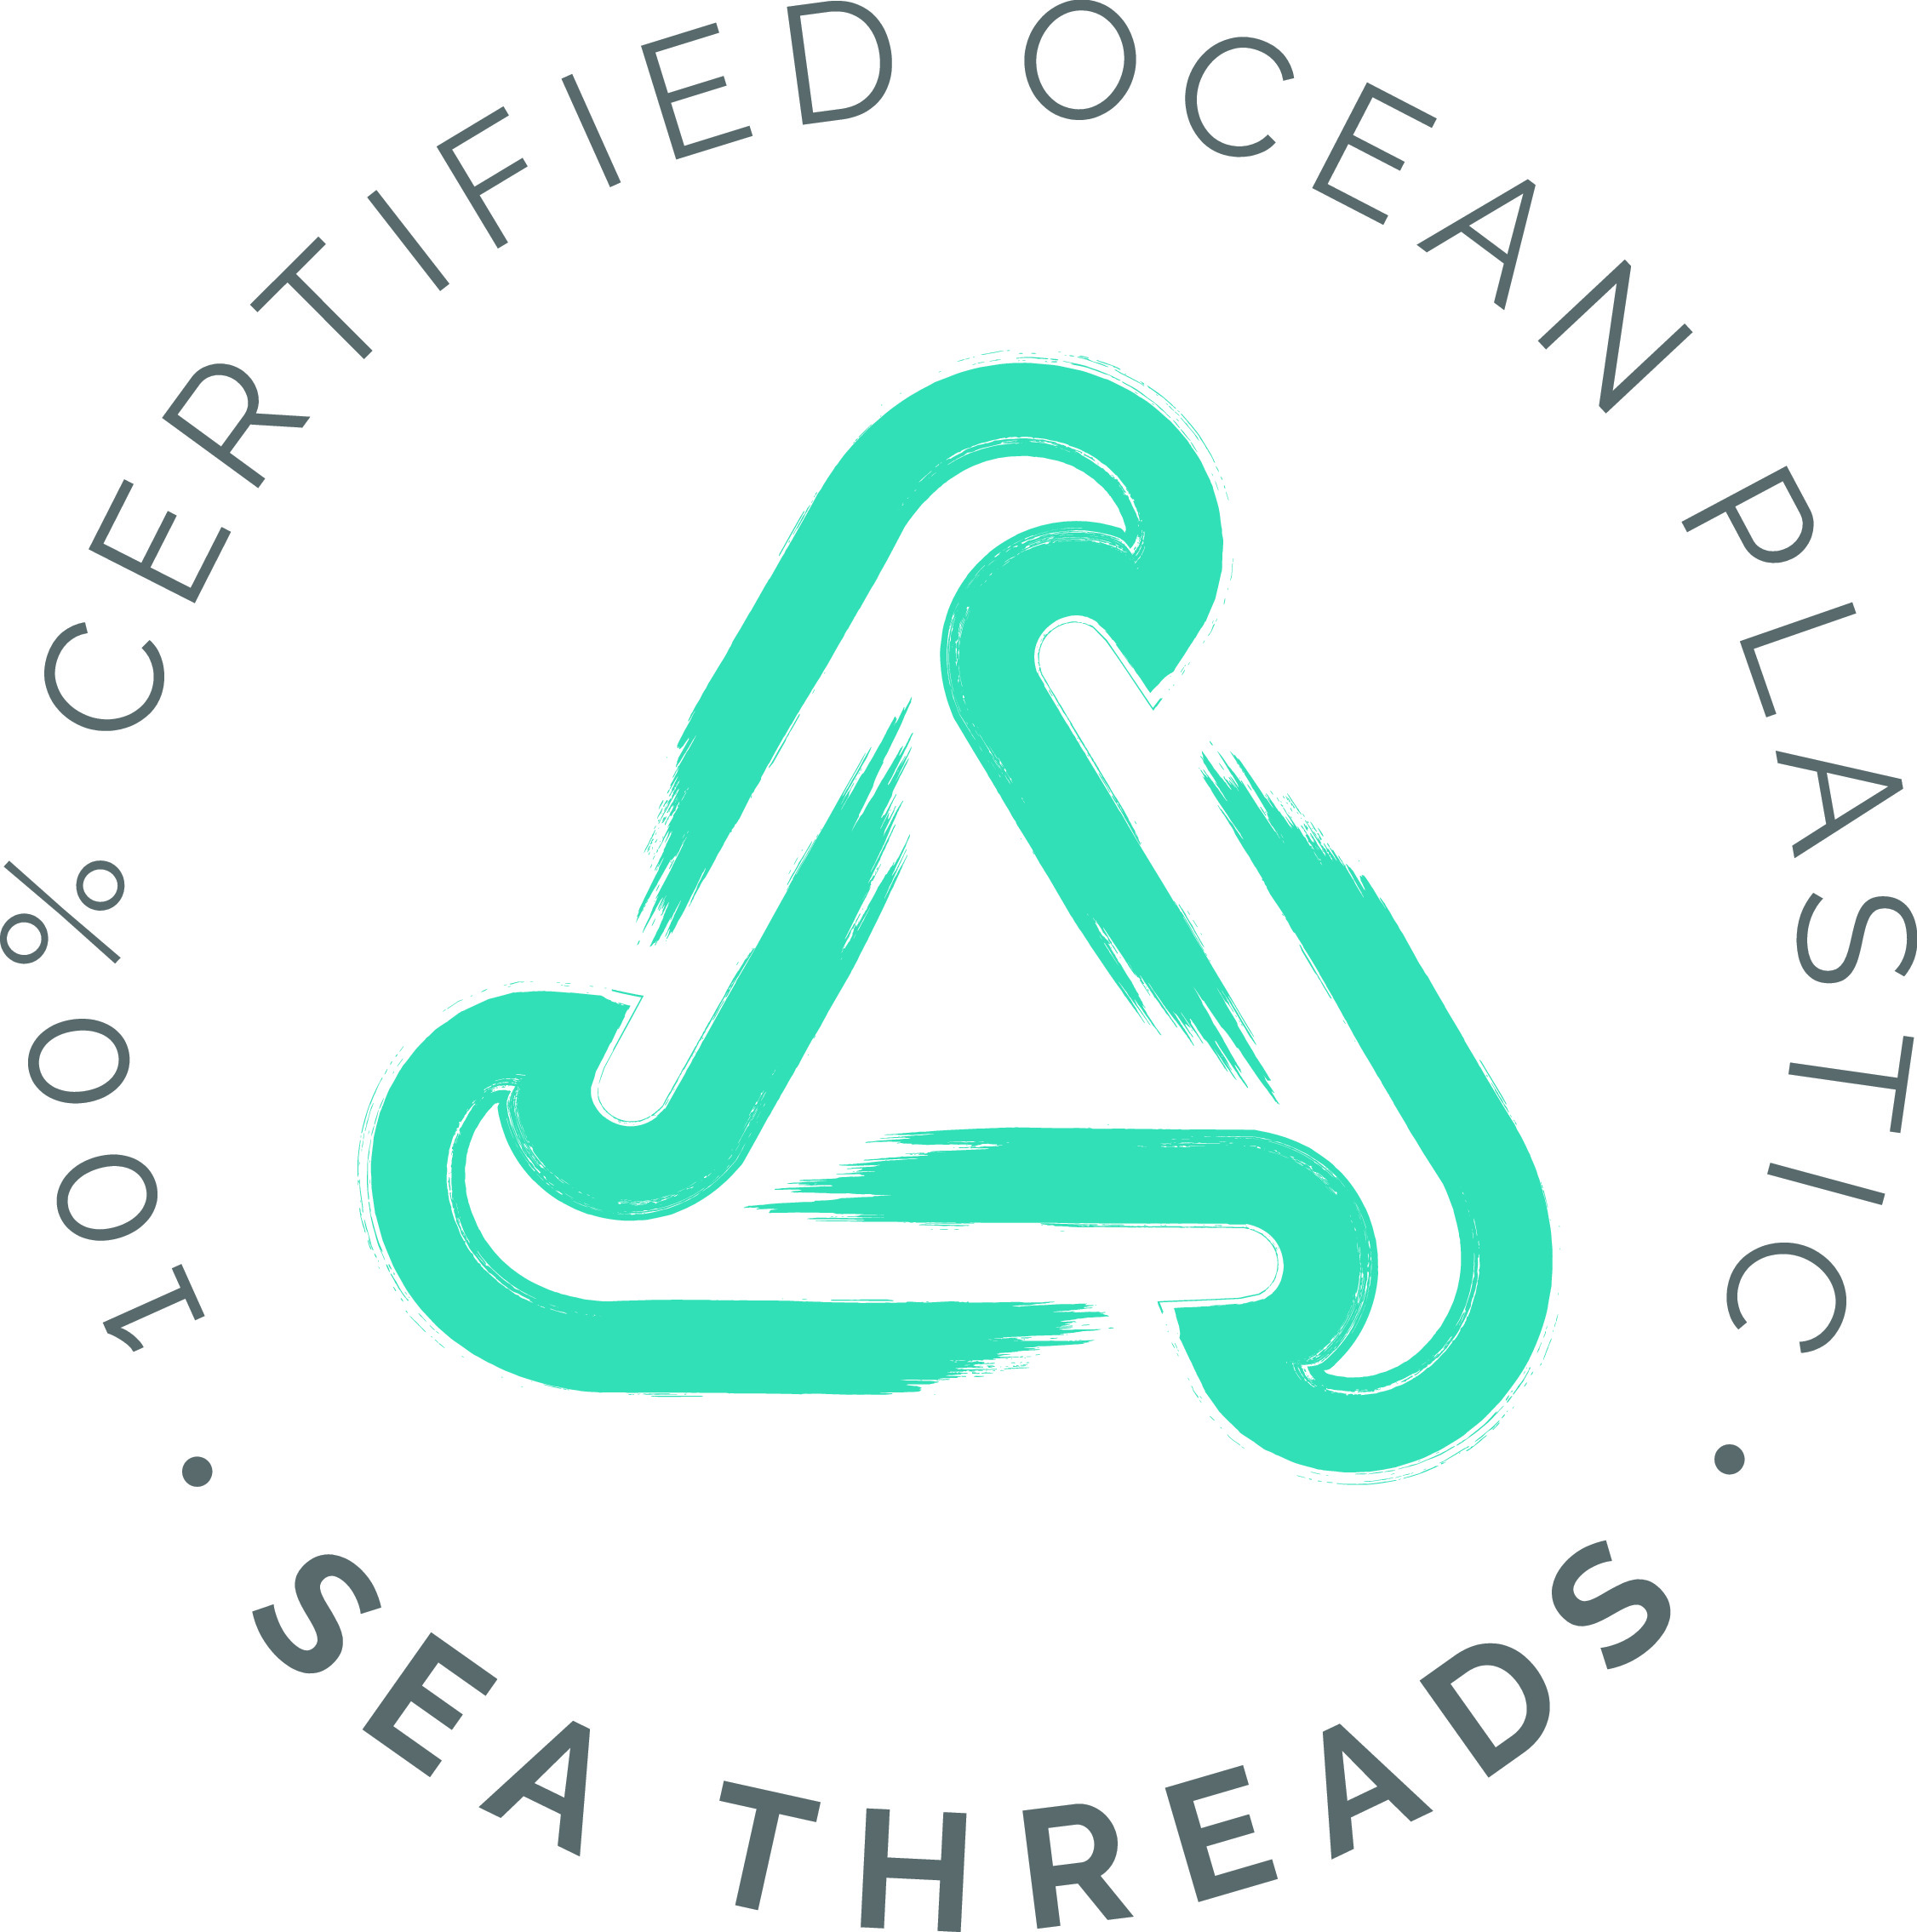 Sea Threads Set to Remove Over 500 lbs of Plastic from the Ocean